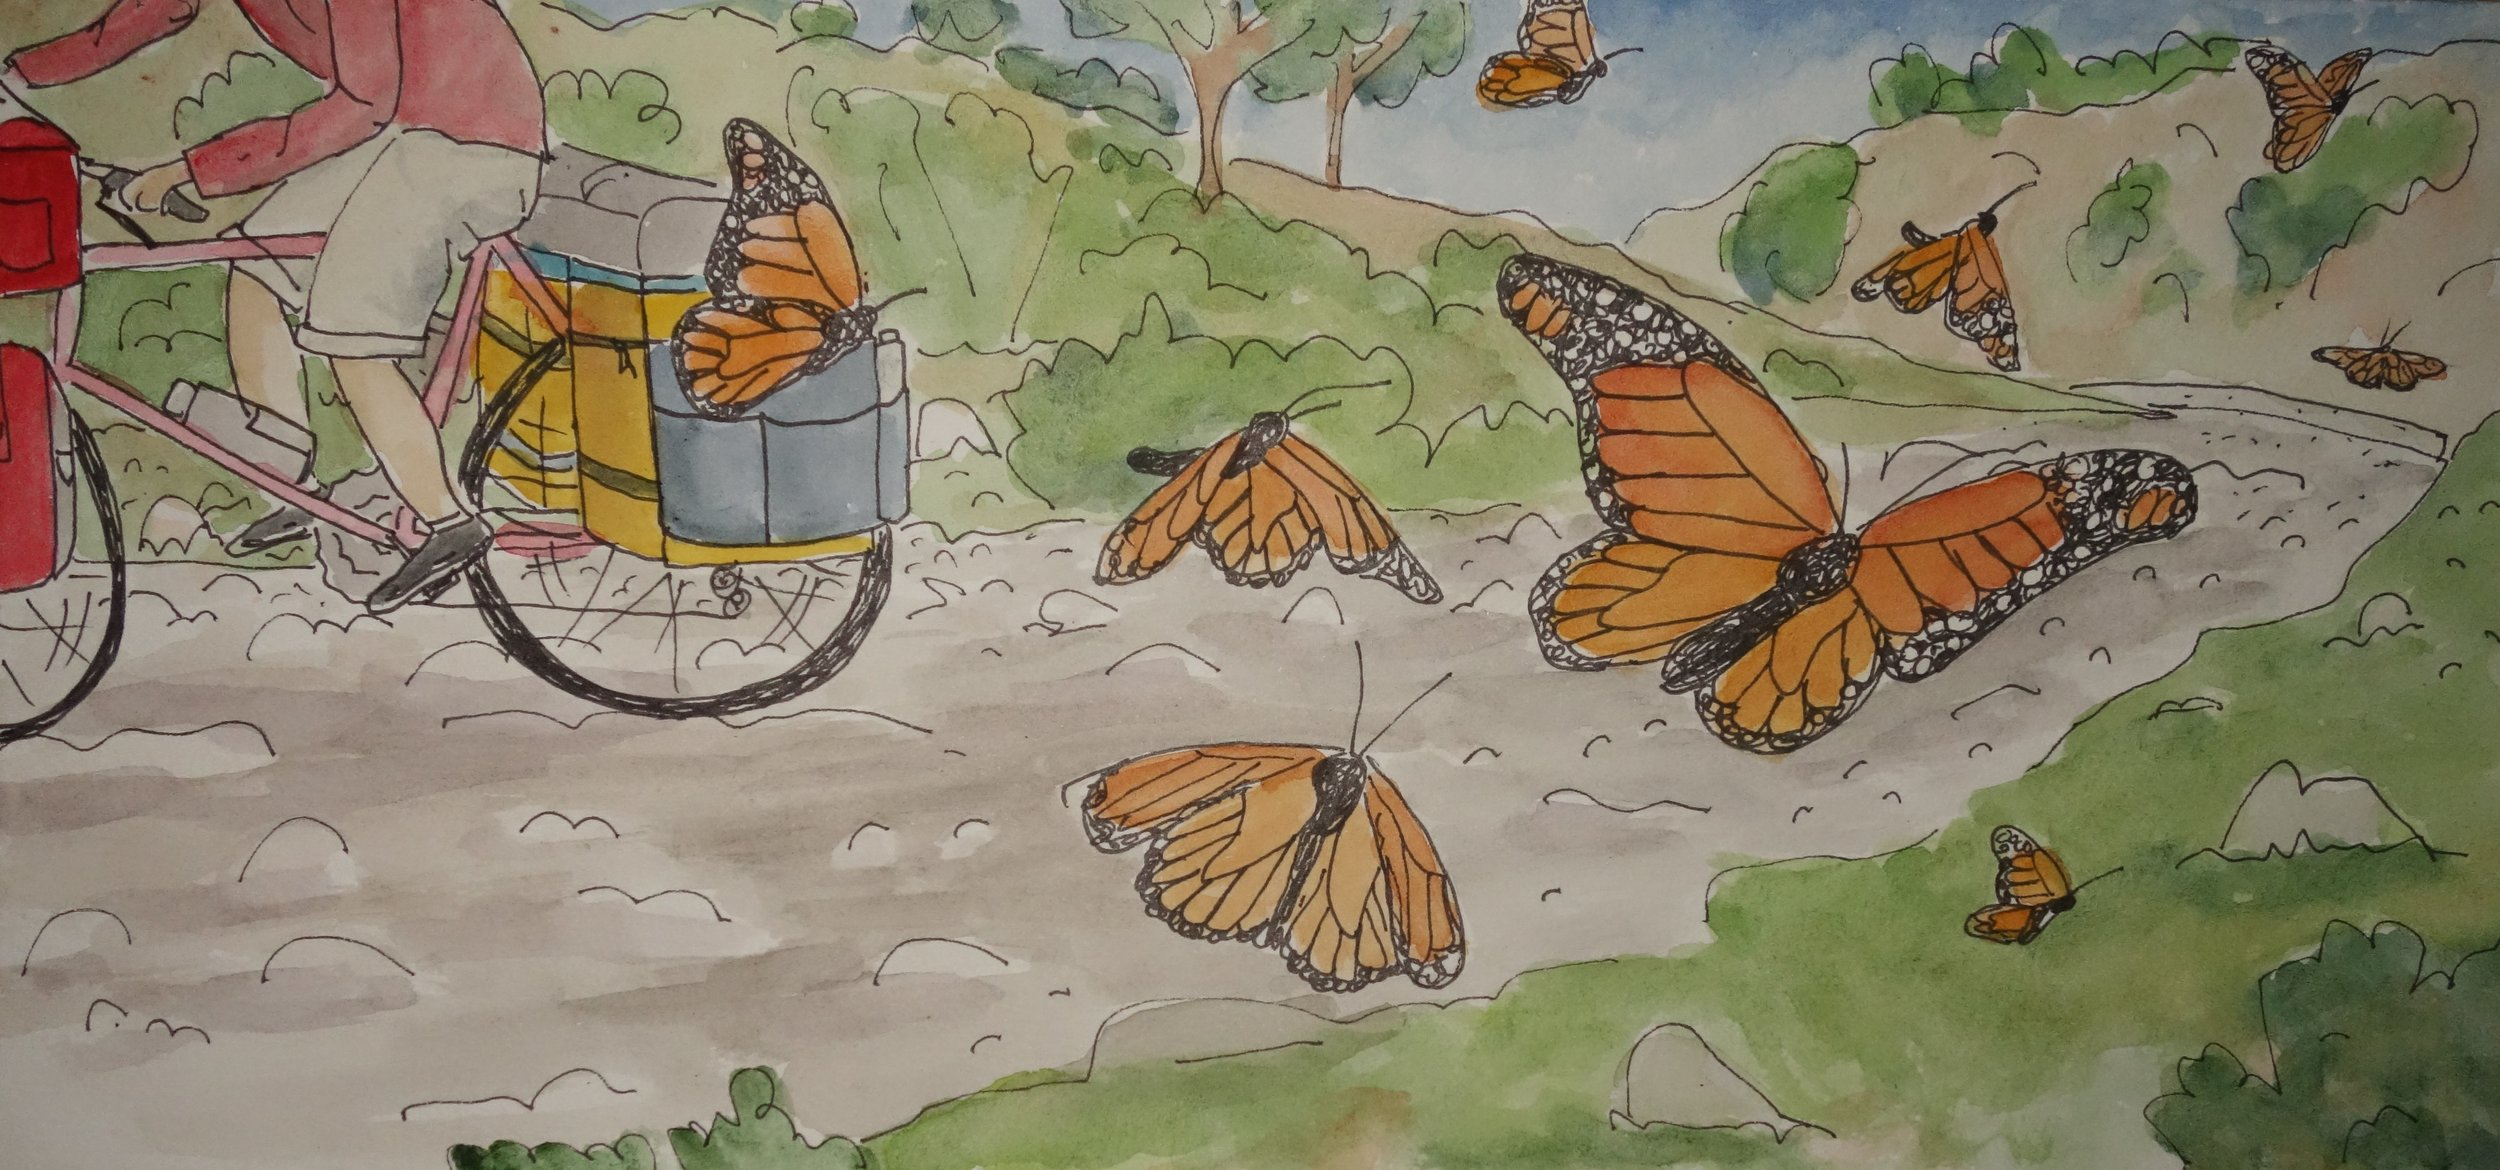 E. I rode between the sanctuaries, interrupting the monarchs drinking from puddles and preparing to fly north. ,